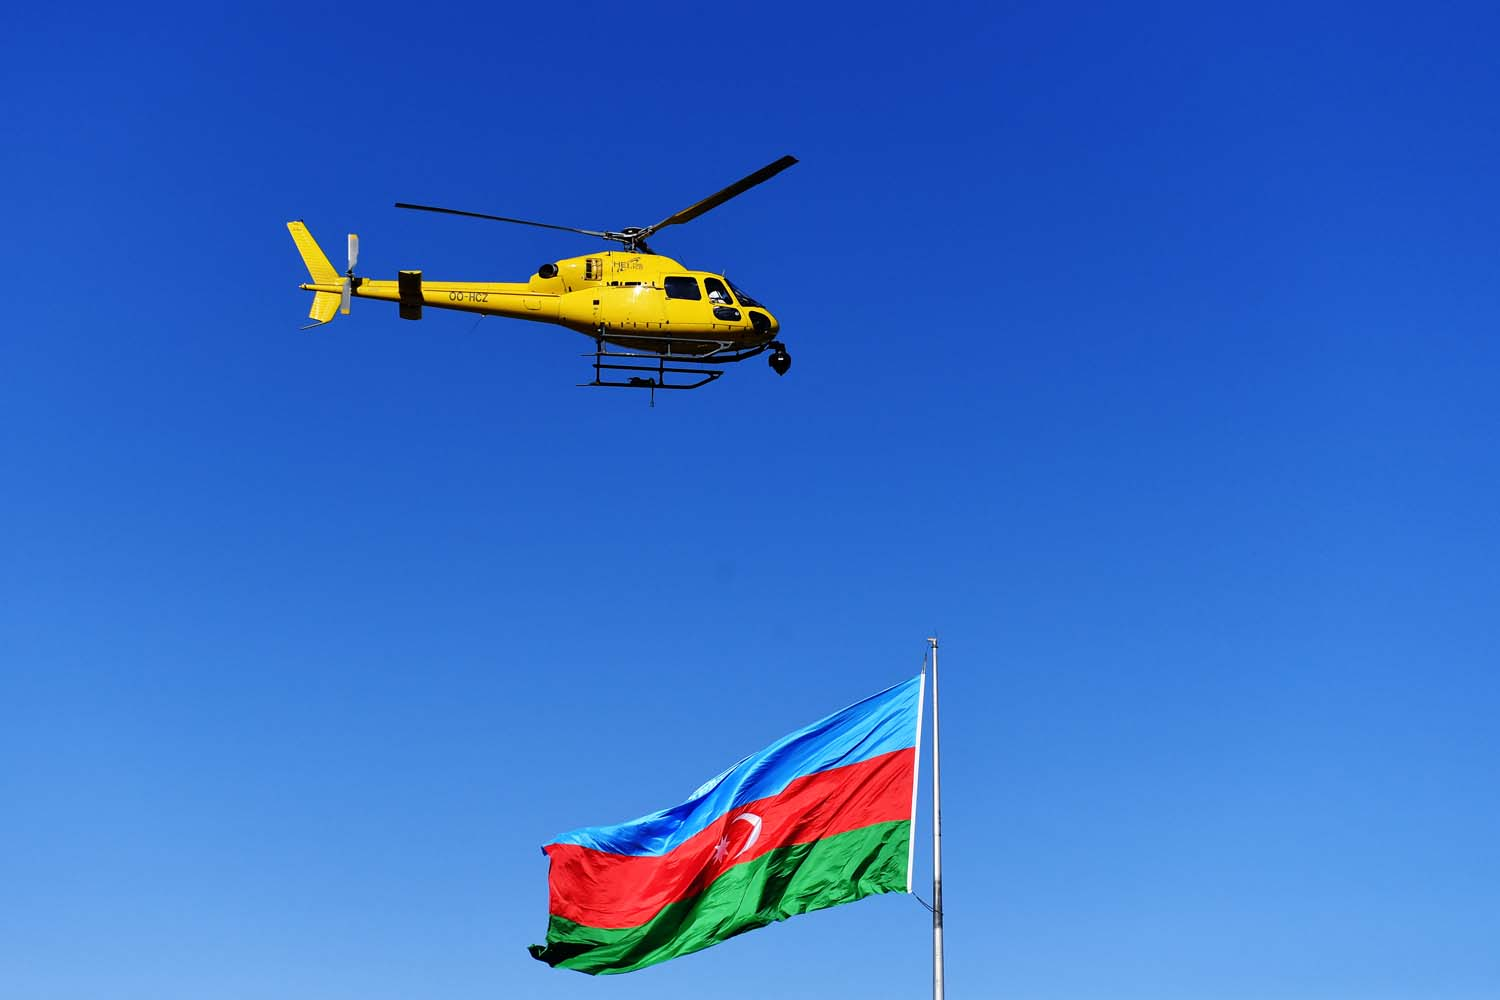 The TV helicopter hovers over the circuit with an Azerbaijan flag